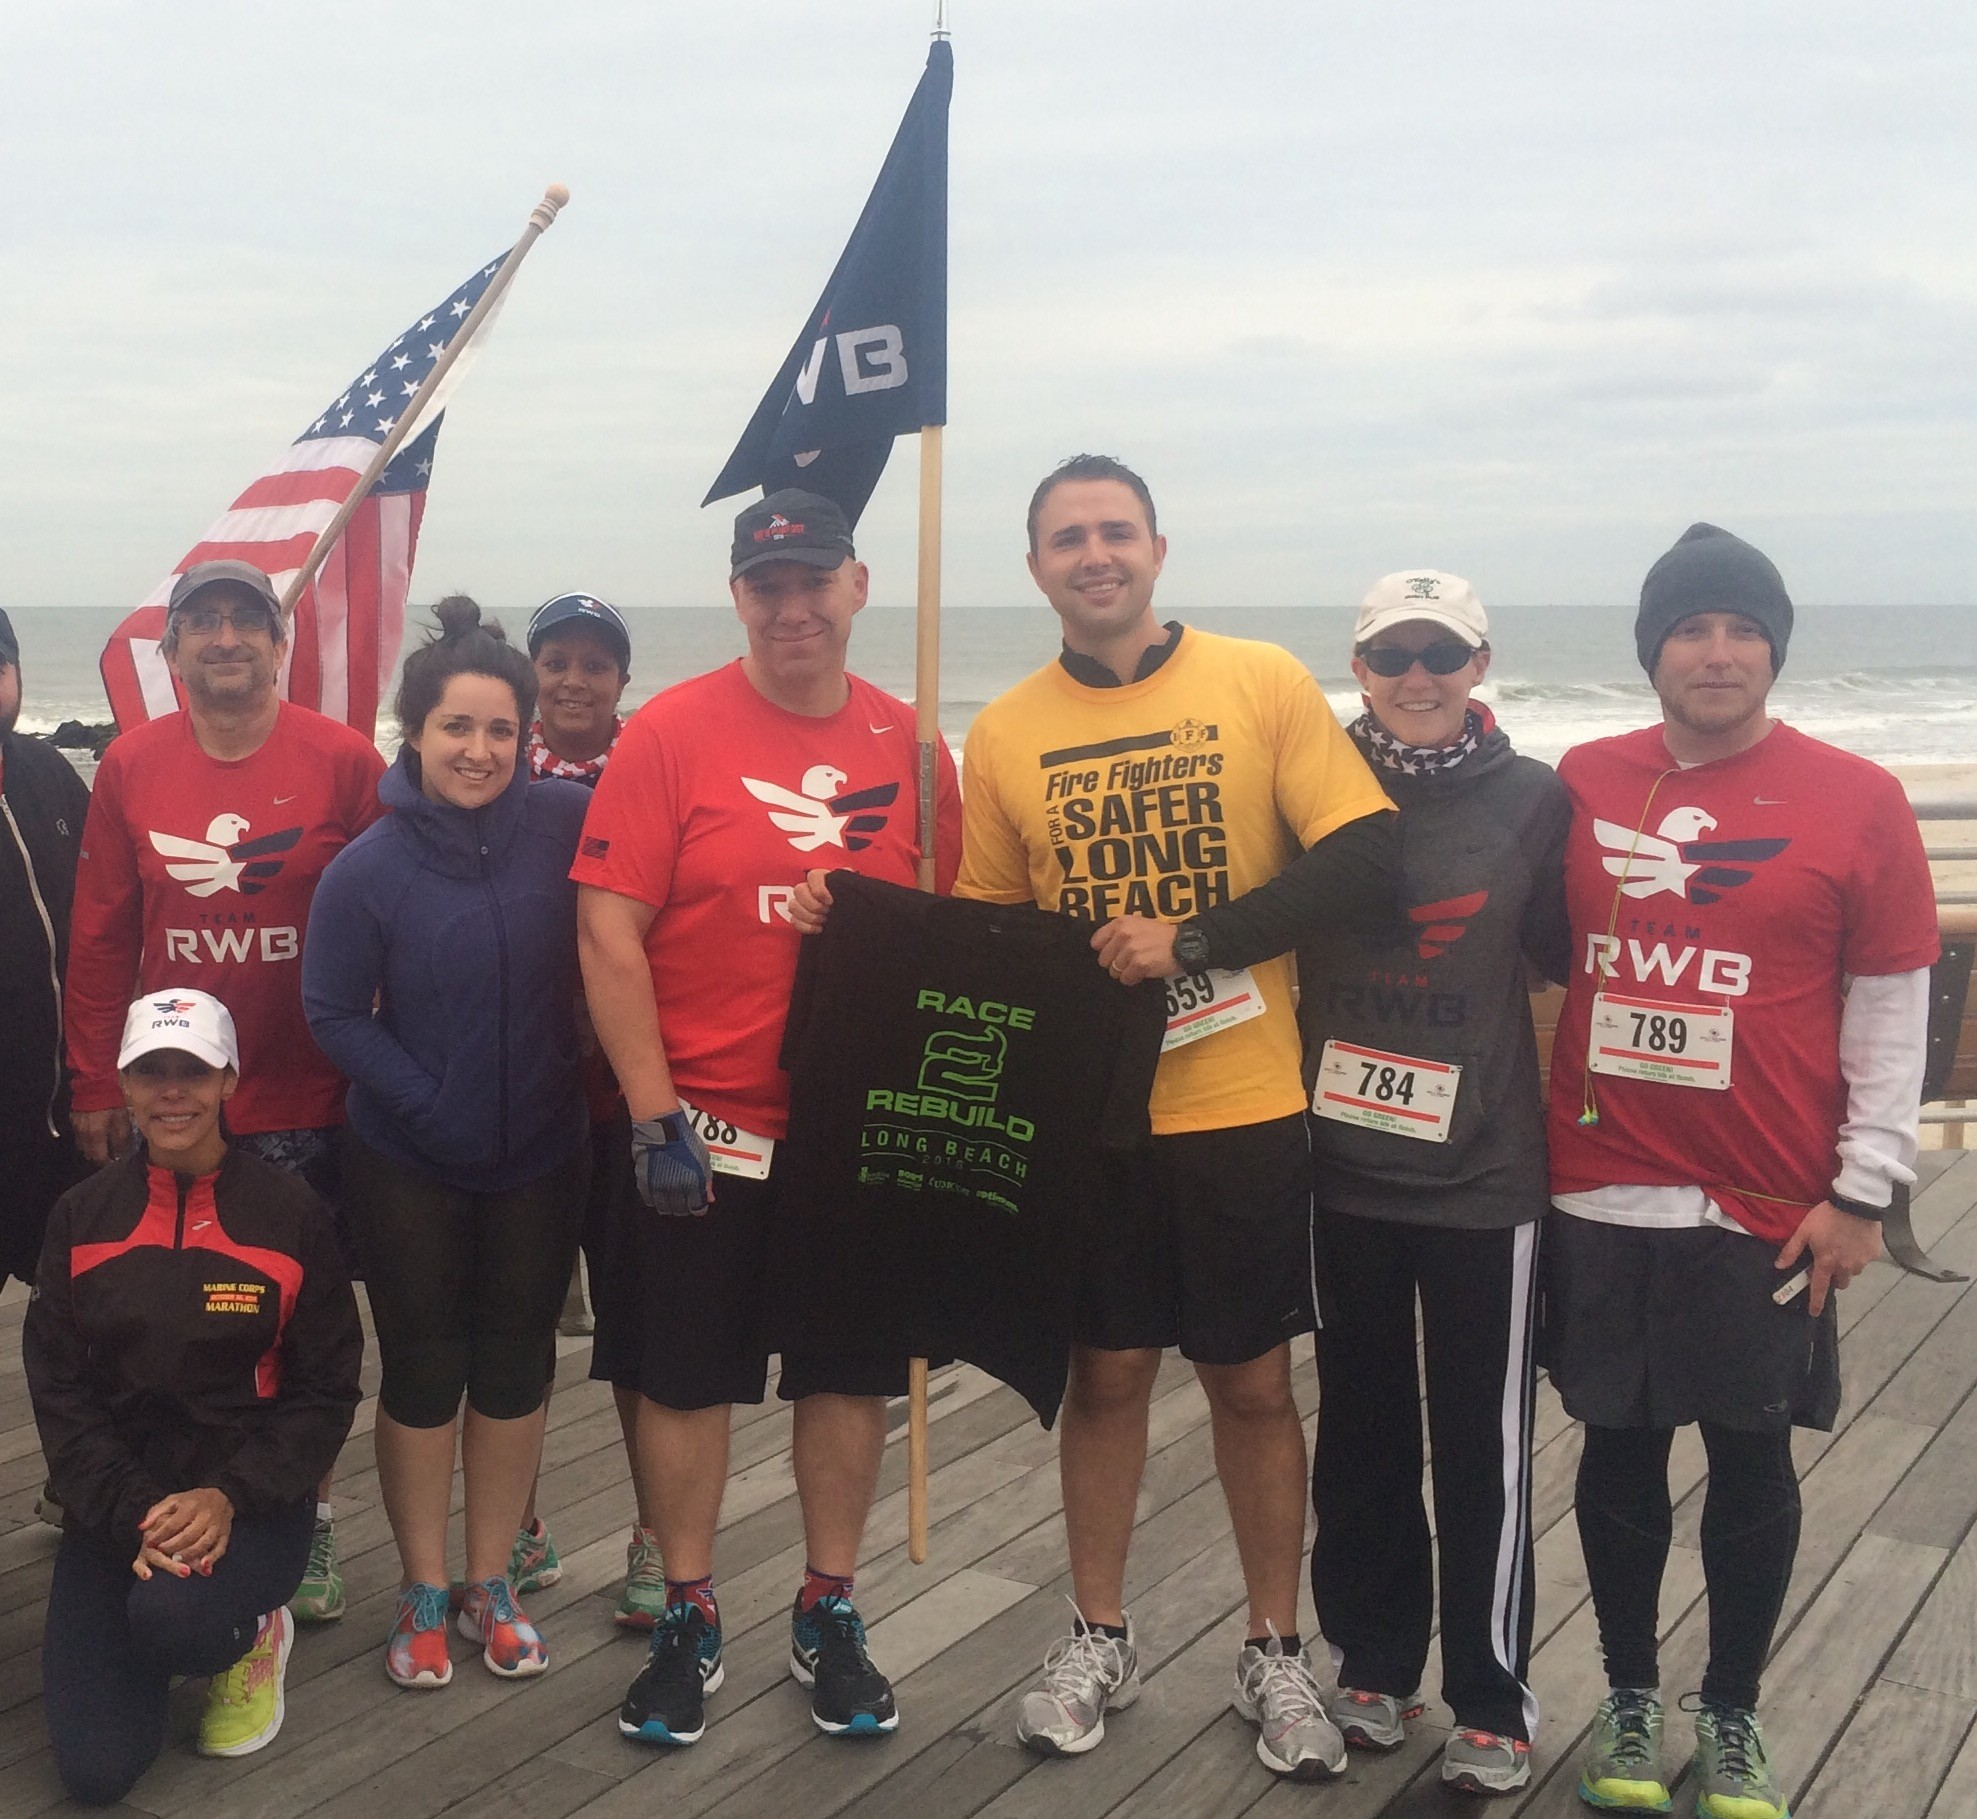 Members of Team Rubicon and local firefighter Sam Pinto at the Race2Rebuild event